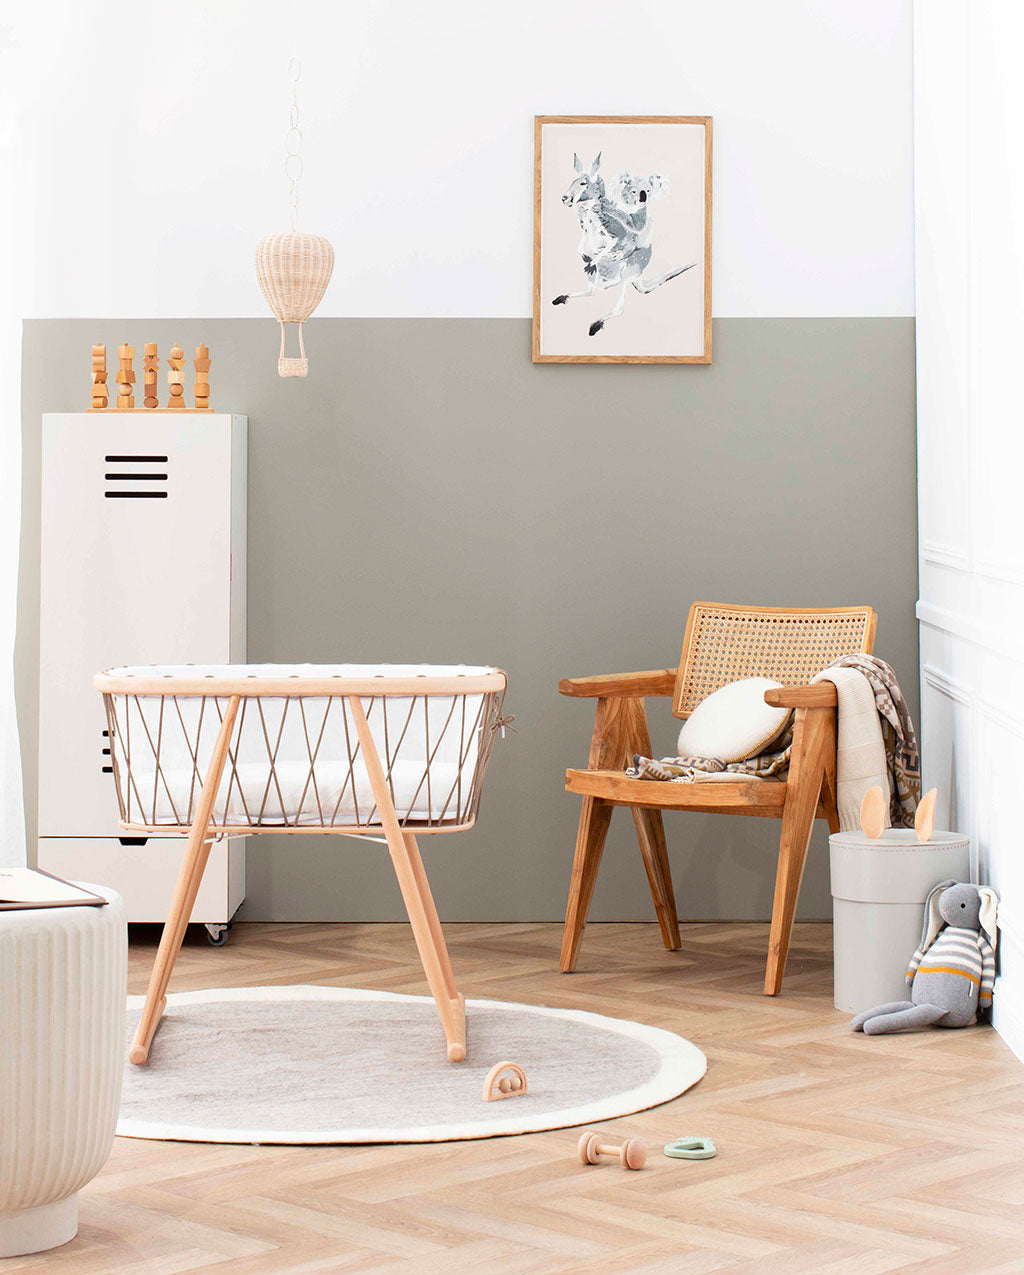 Charlie Crane Kumi Cradle in a nursery as featured in Milky Magazine